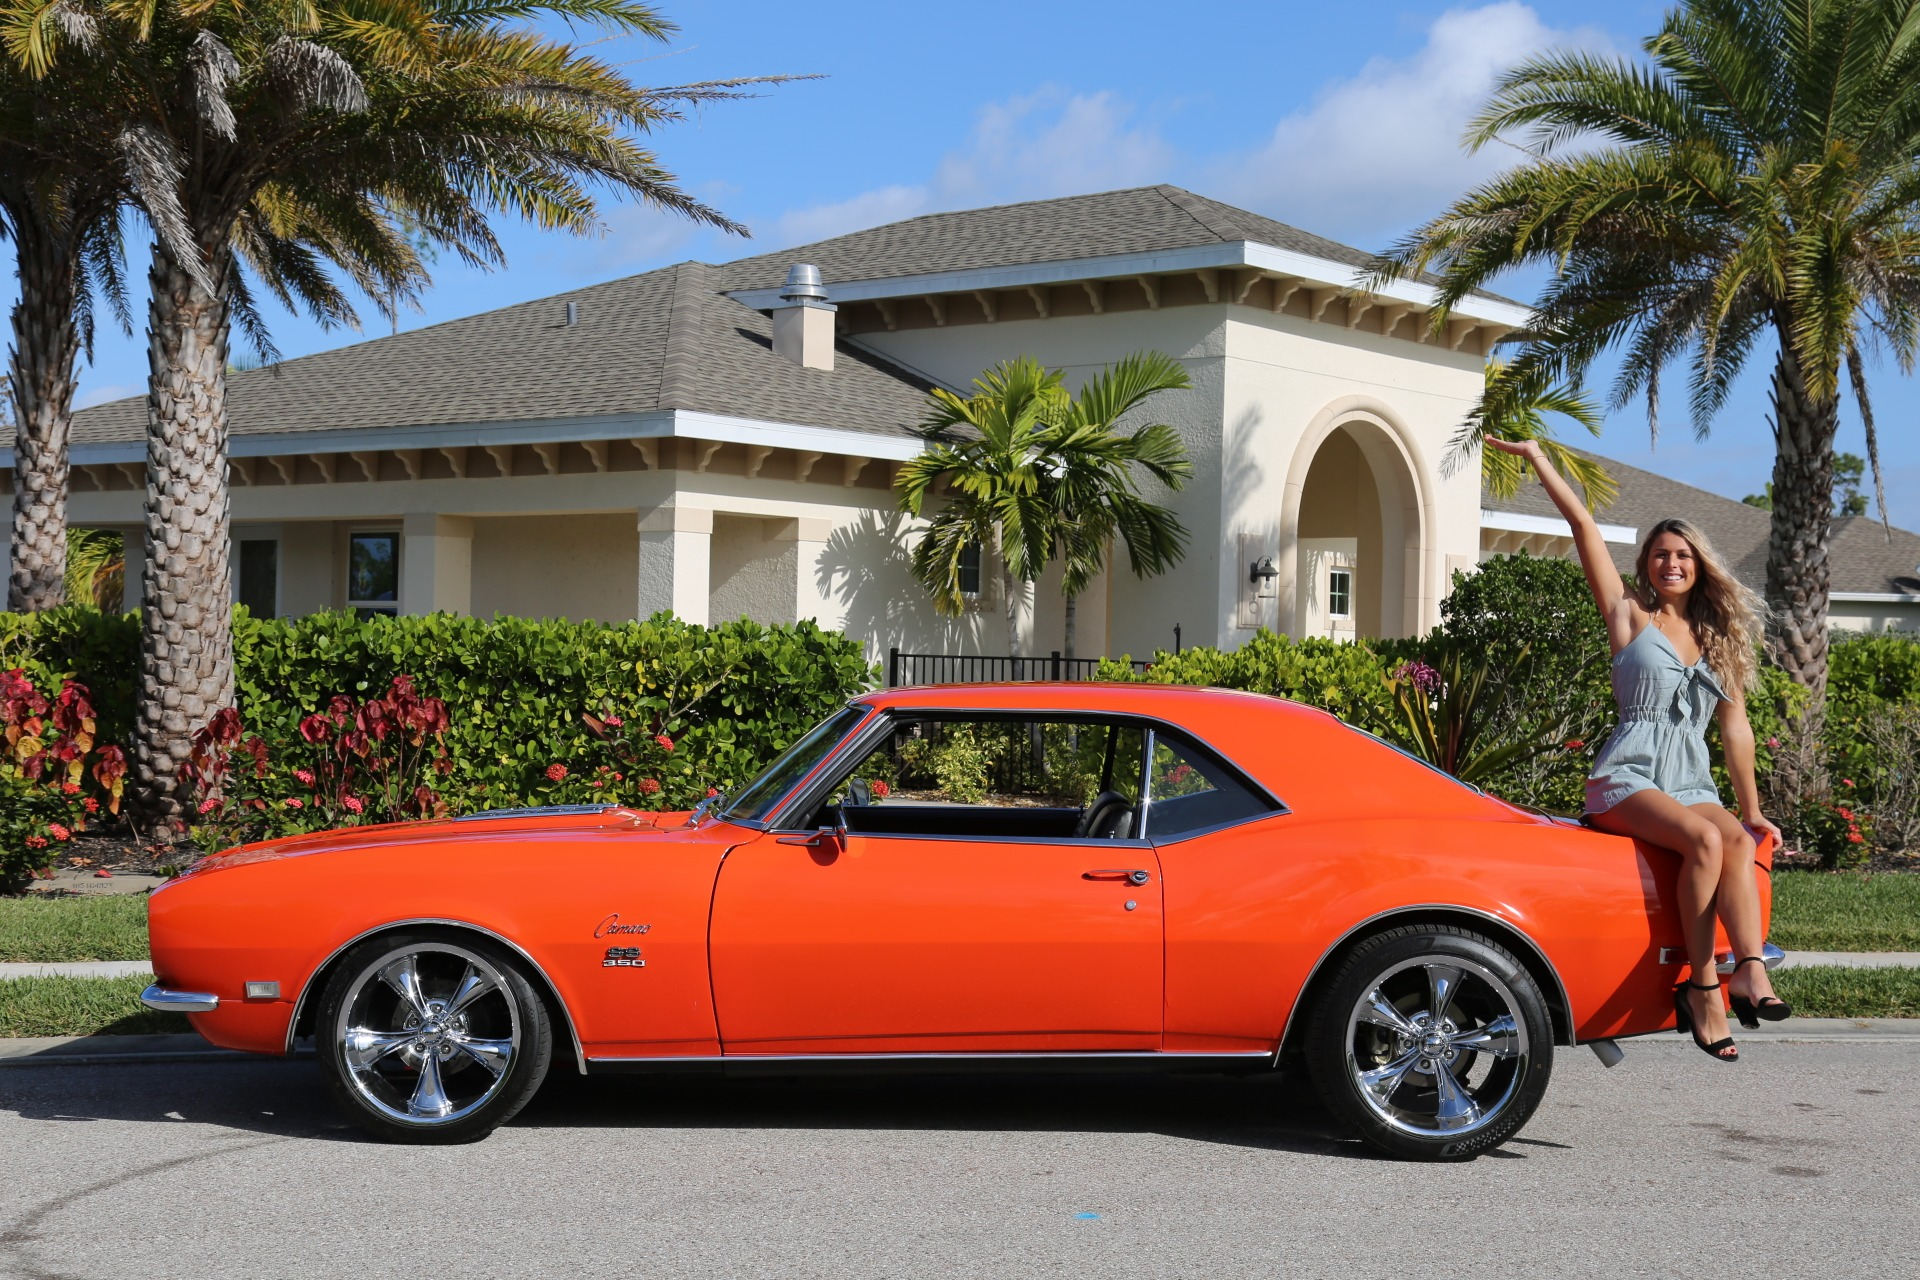 Used 1968 Chevy Camaro V8 4 Speed Manual for sale $31,000 at Muscle Cars for Sale Inc. in Fort Myers FL 33912 3